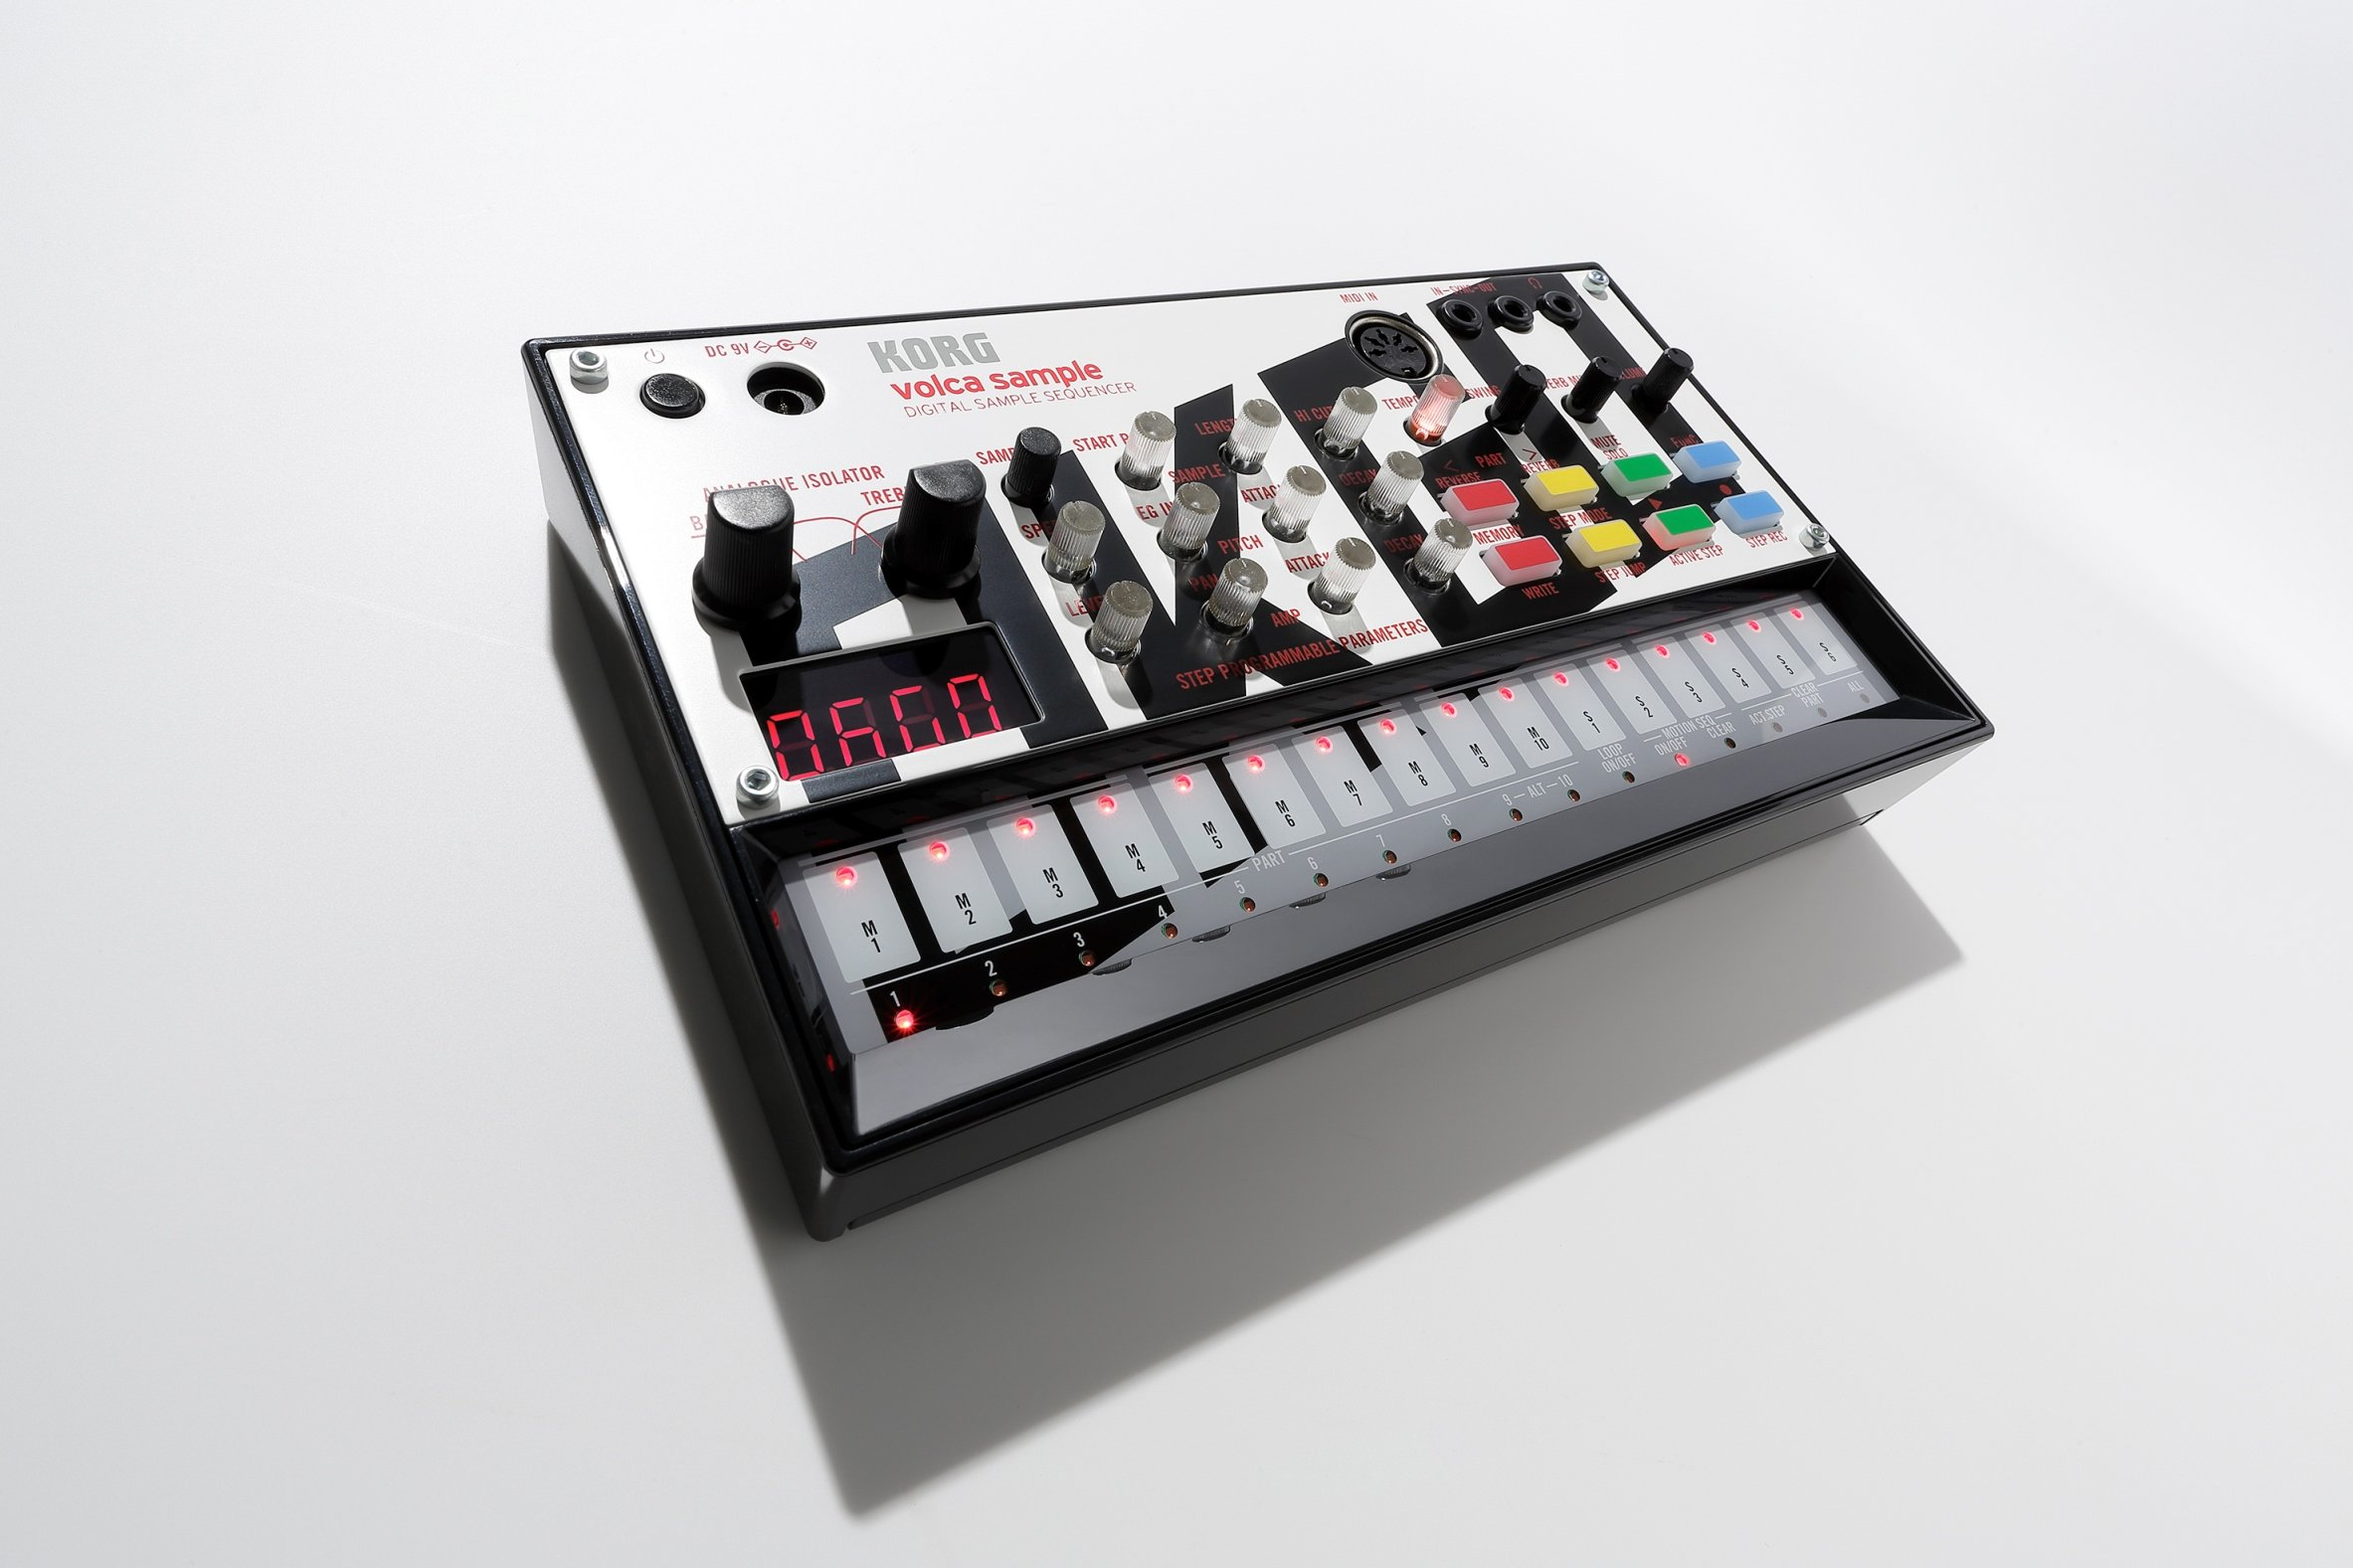 Korg VOLCAOKGO Limited Edition Version Volca Sample with Content & Panel Graphic (Created by OKGO) by Korg (Image #4)